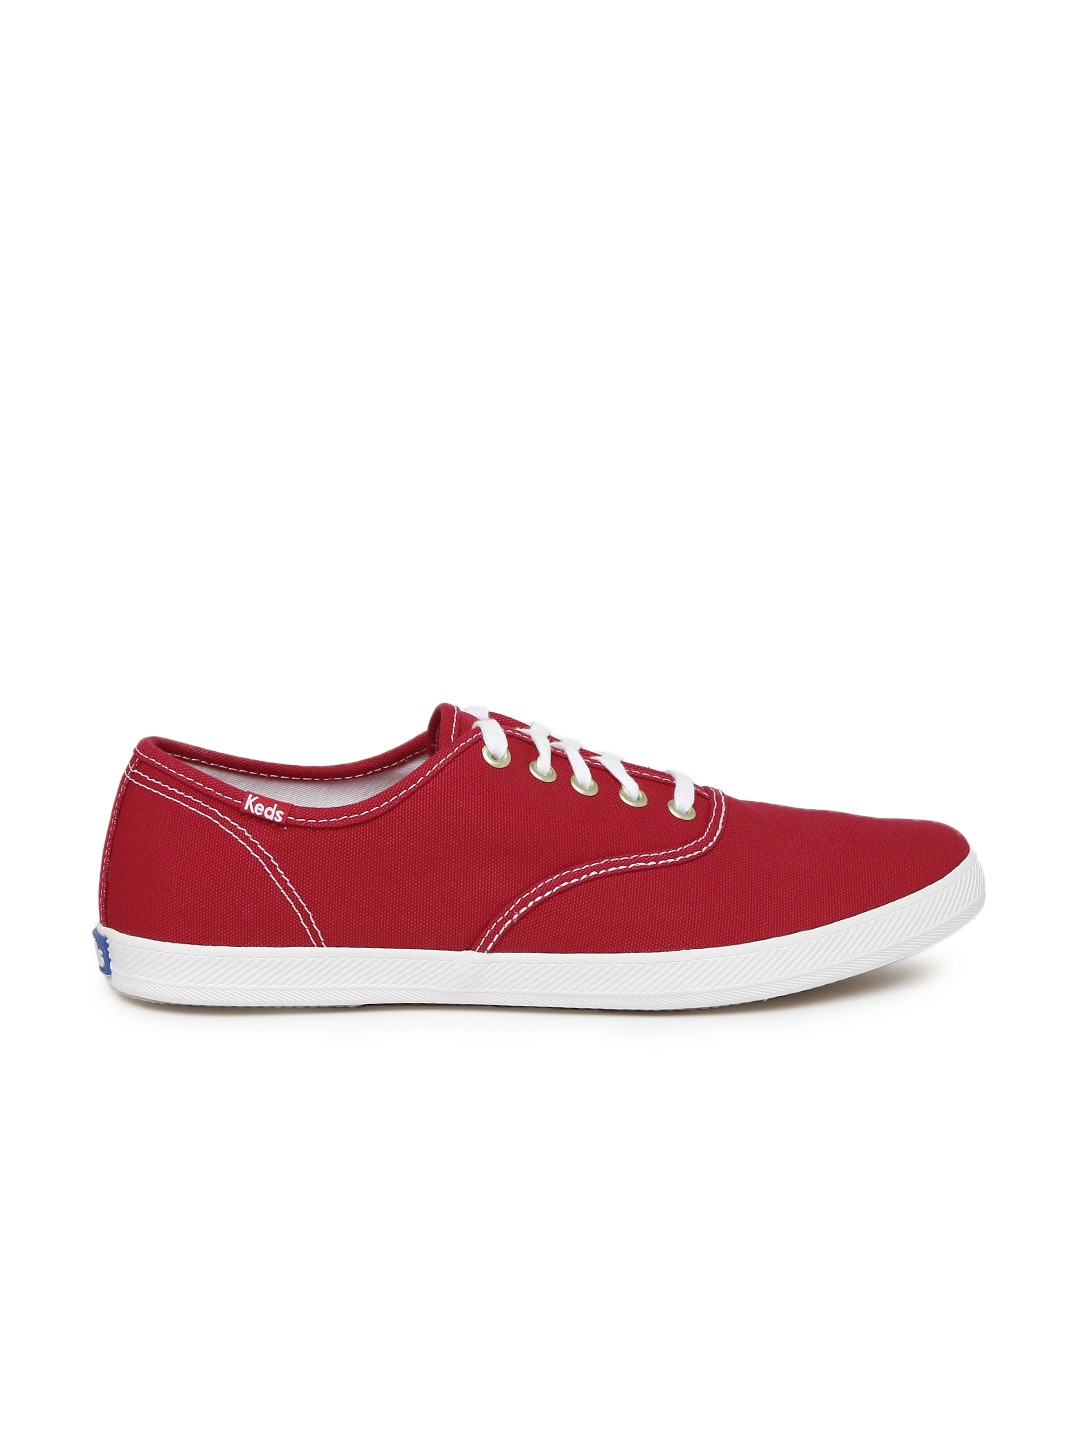 fc34b0c3f0353 Casual Shoes For Men - Buy Casual   Flat Shoes For Men